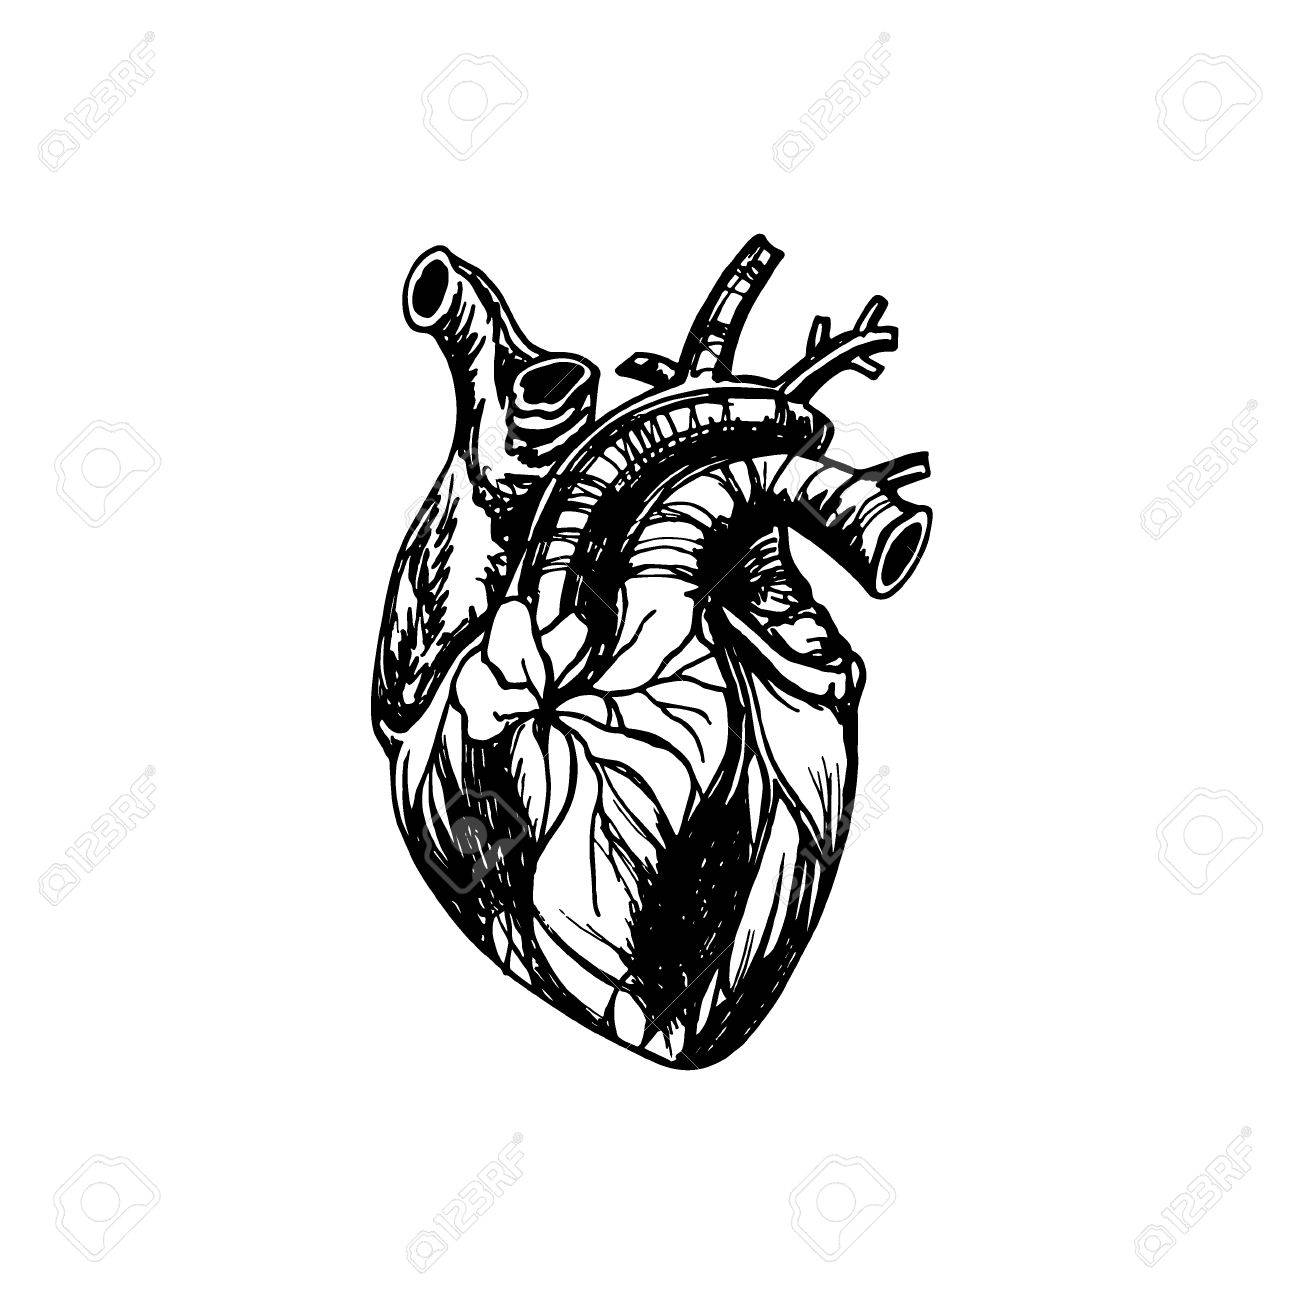 1300x1300 Vector Illustration Of Human Heart. Anatomy Drawing Made